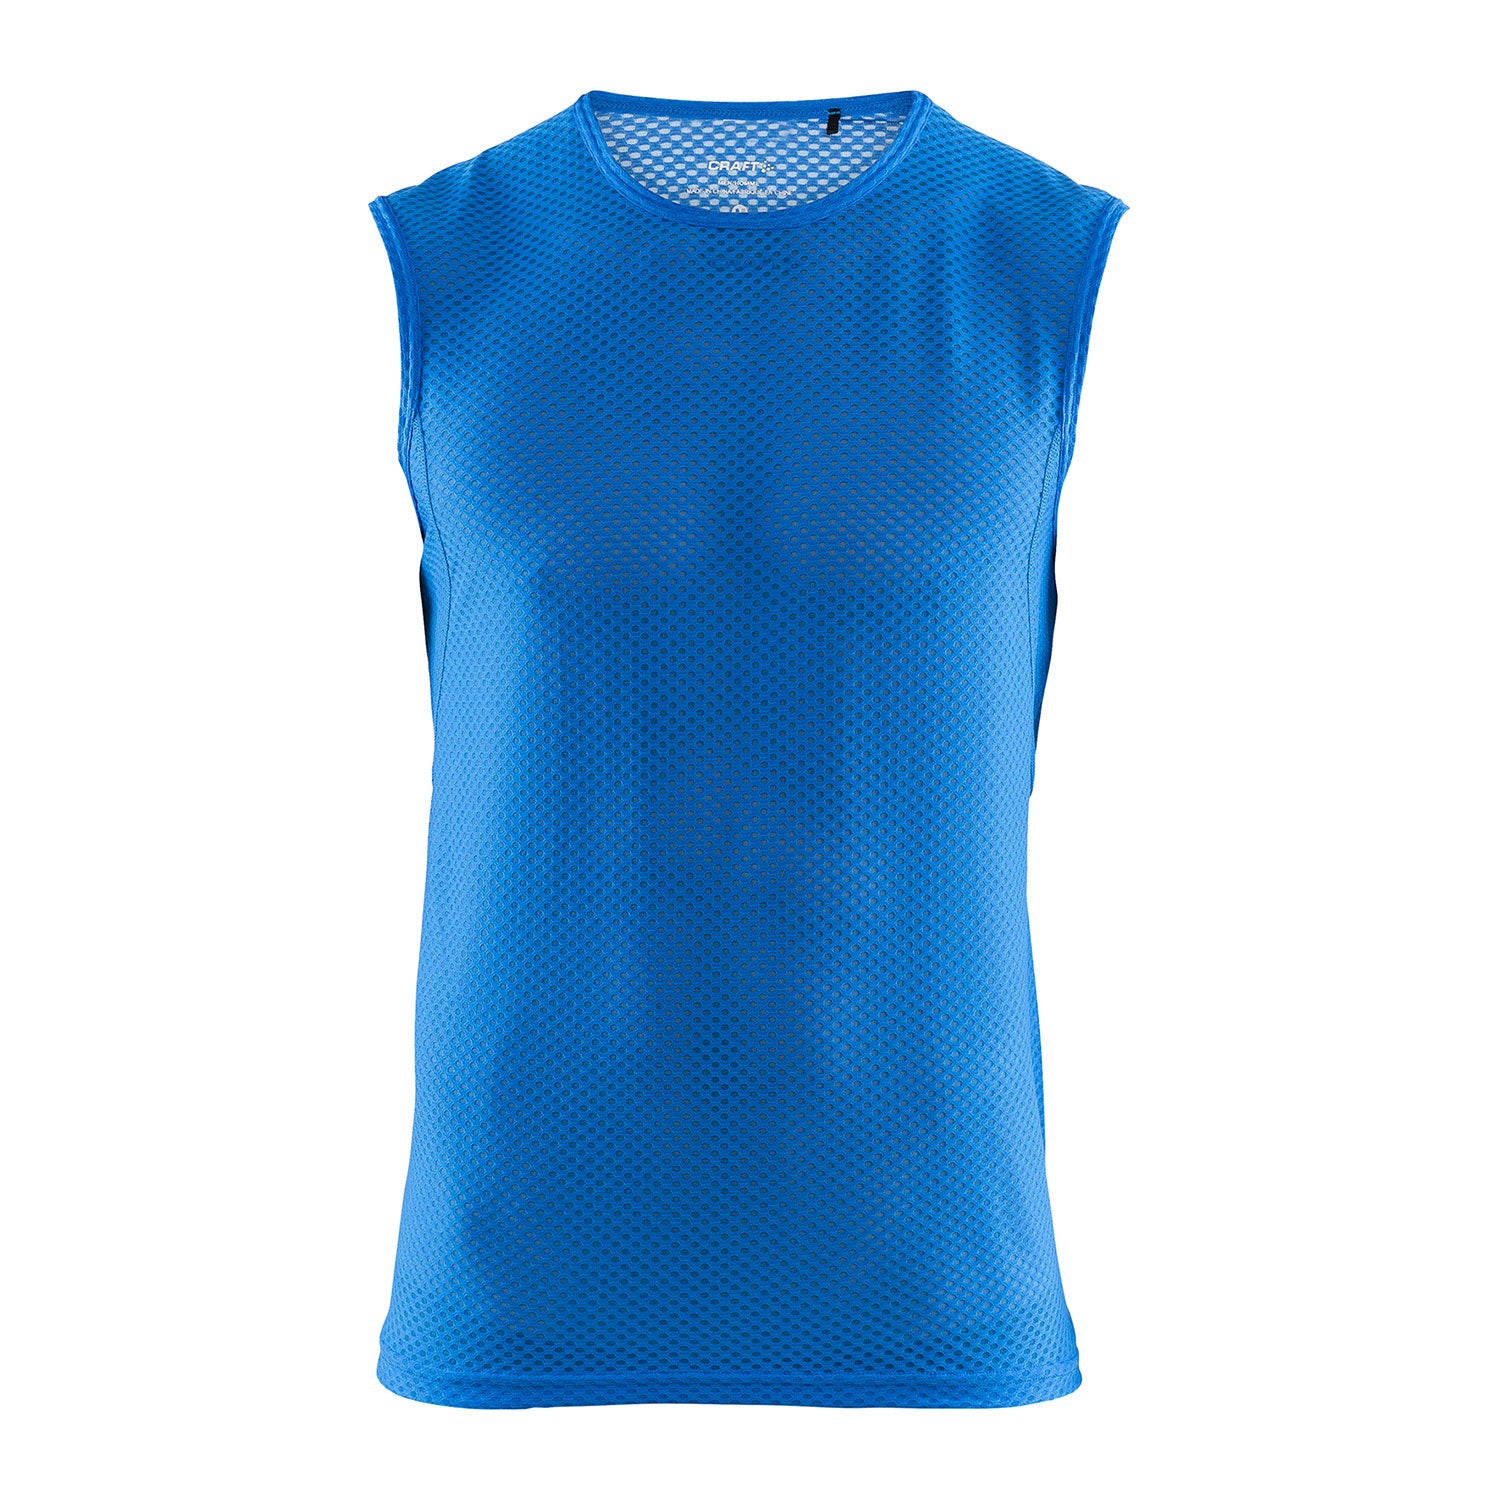 Craft Cool Superlight Blue SL Baselayer